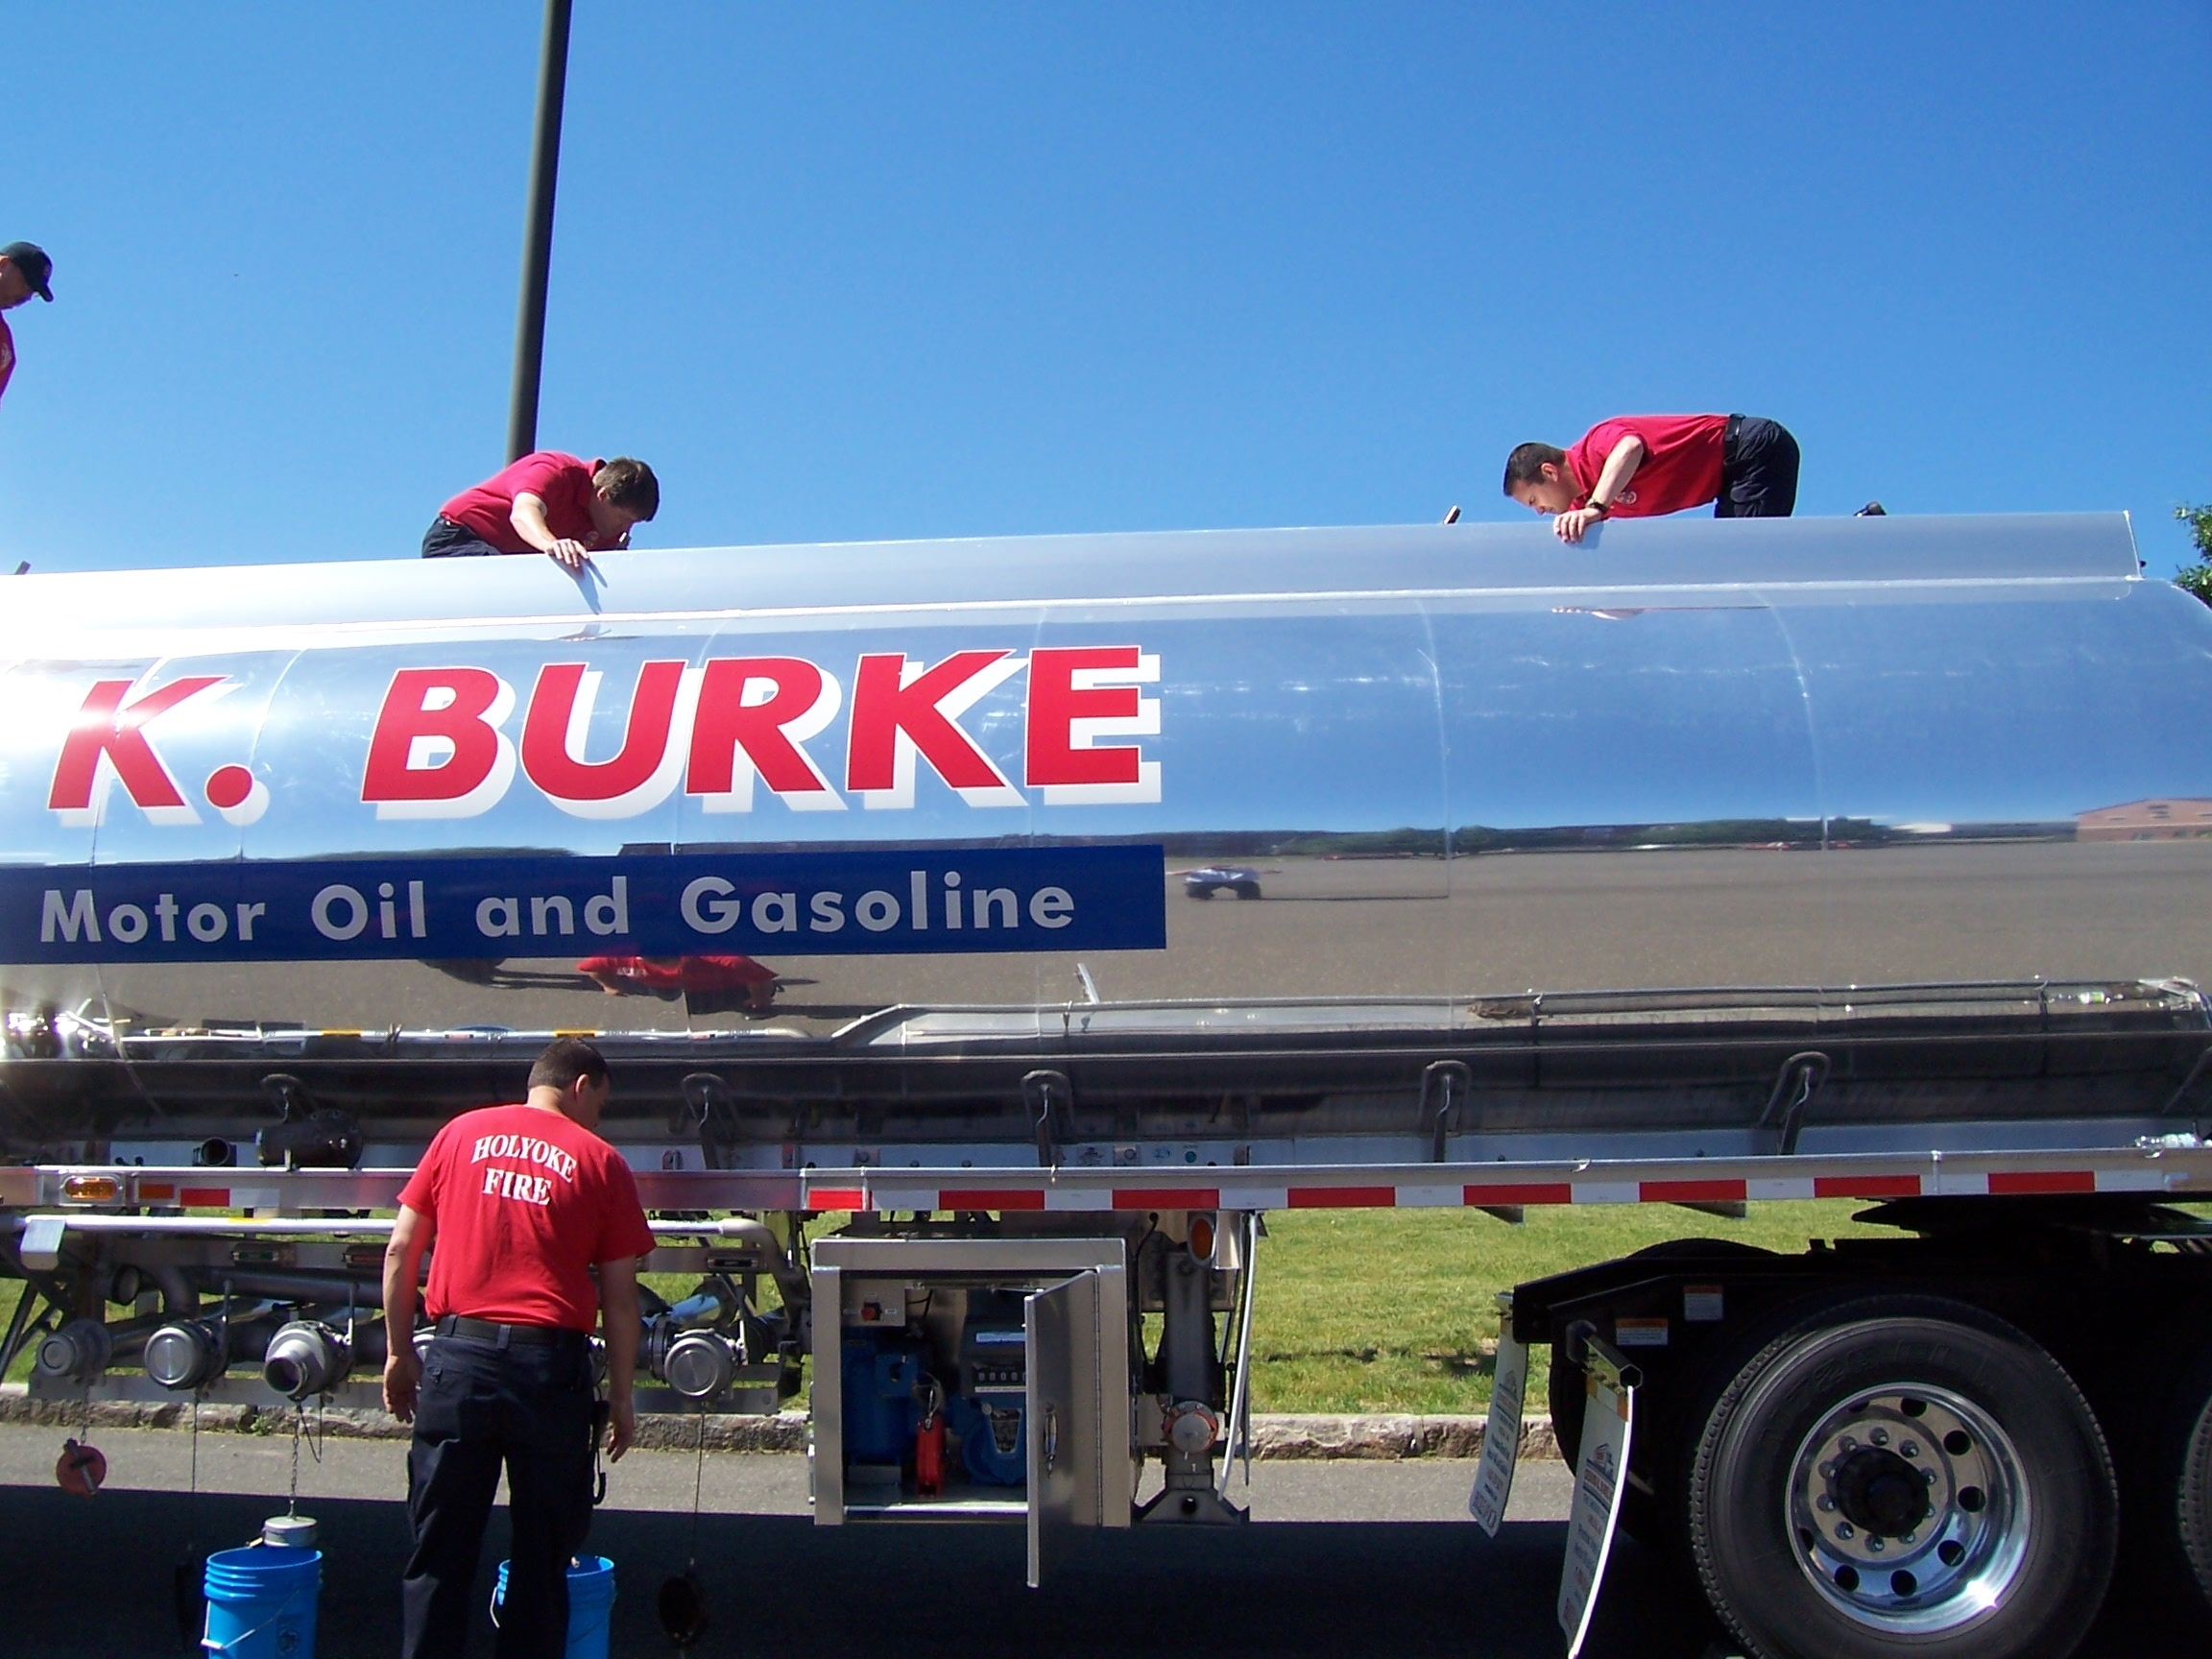 Fire fighter working the controls of a refueling truck